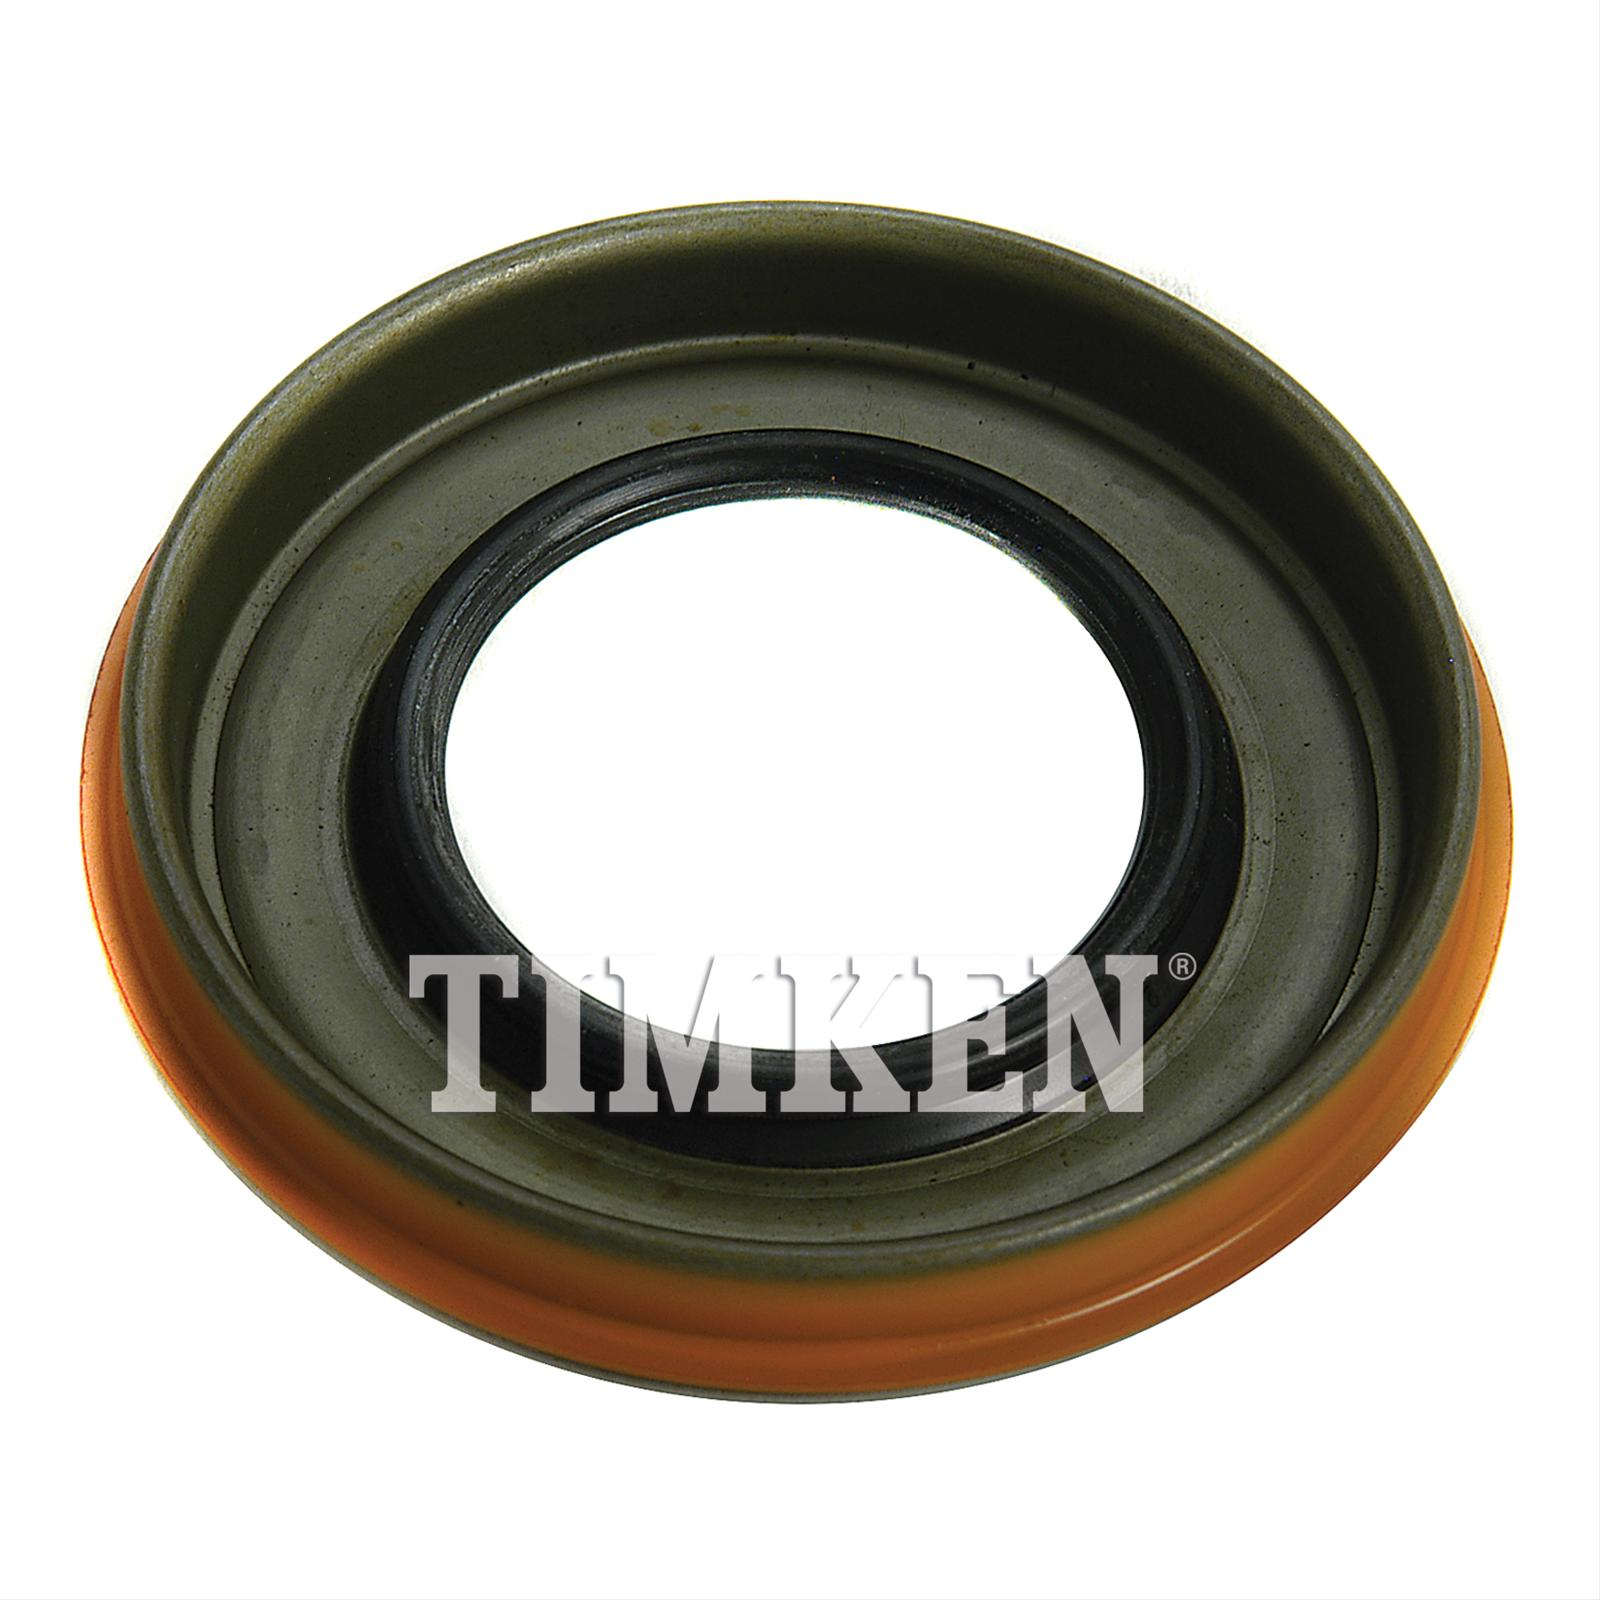 Timken Automatic Transmission Torque Converter Seals 3227 - Free Shipping  on Orders Over $99 at Summit Racing